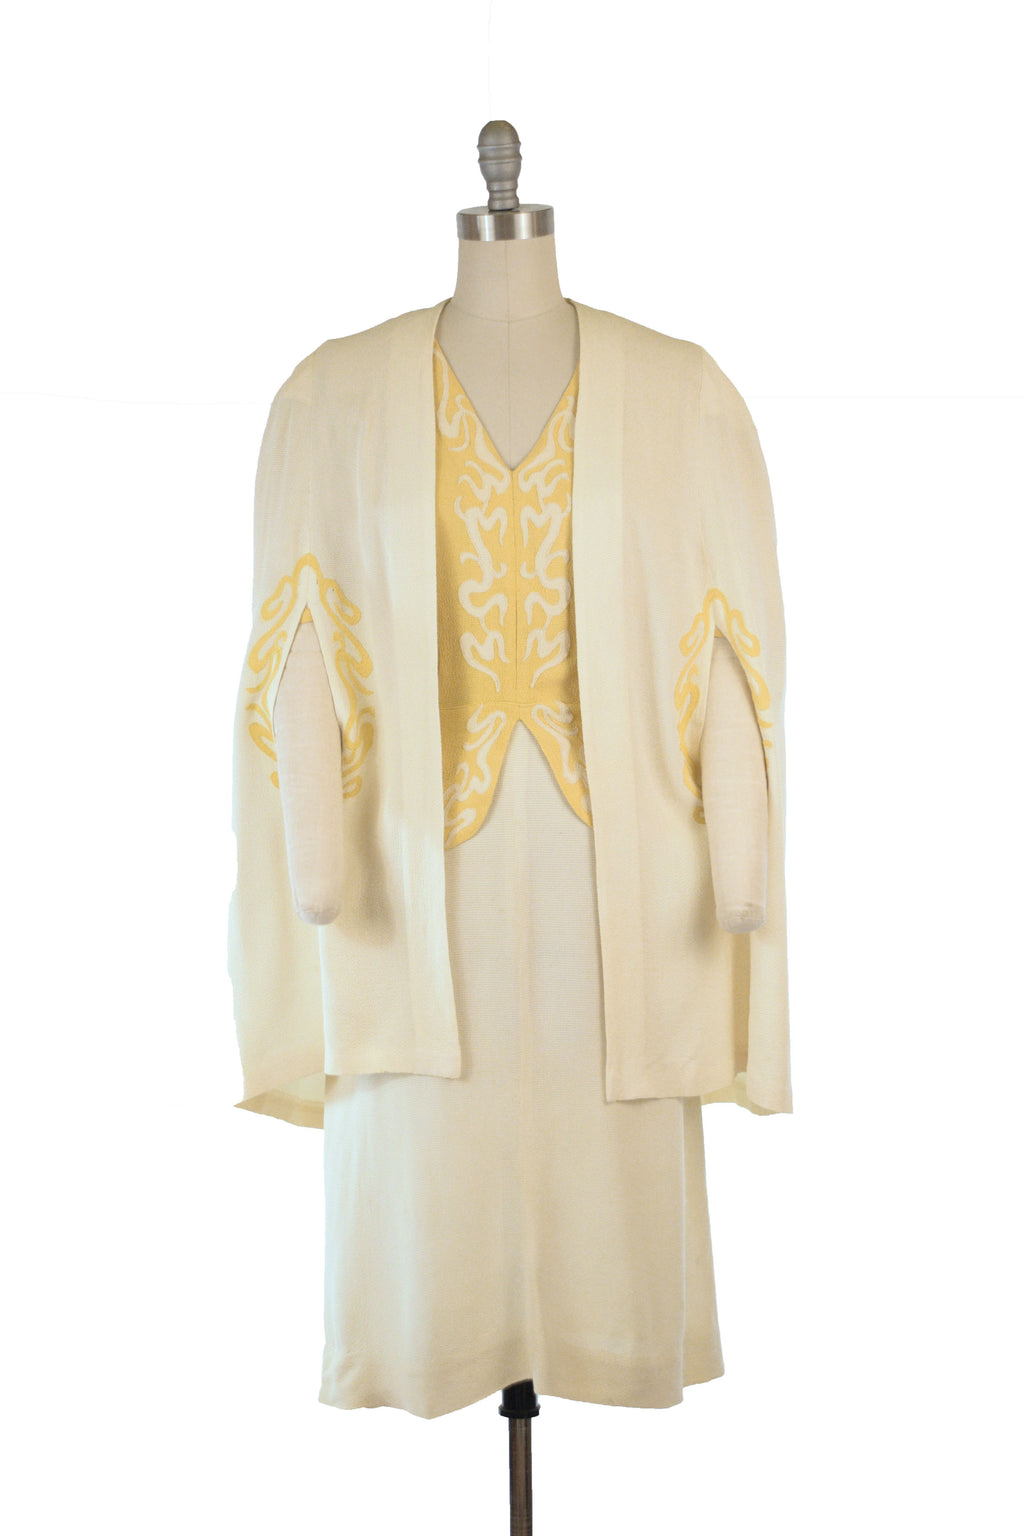 Exceptional 1930s FOGA Caped Two Piece Dress Ensemble in Sunshine Yellow and Warm White